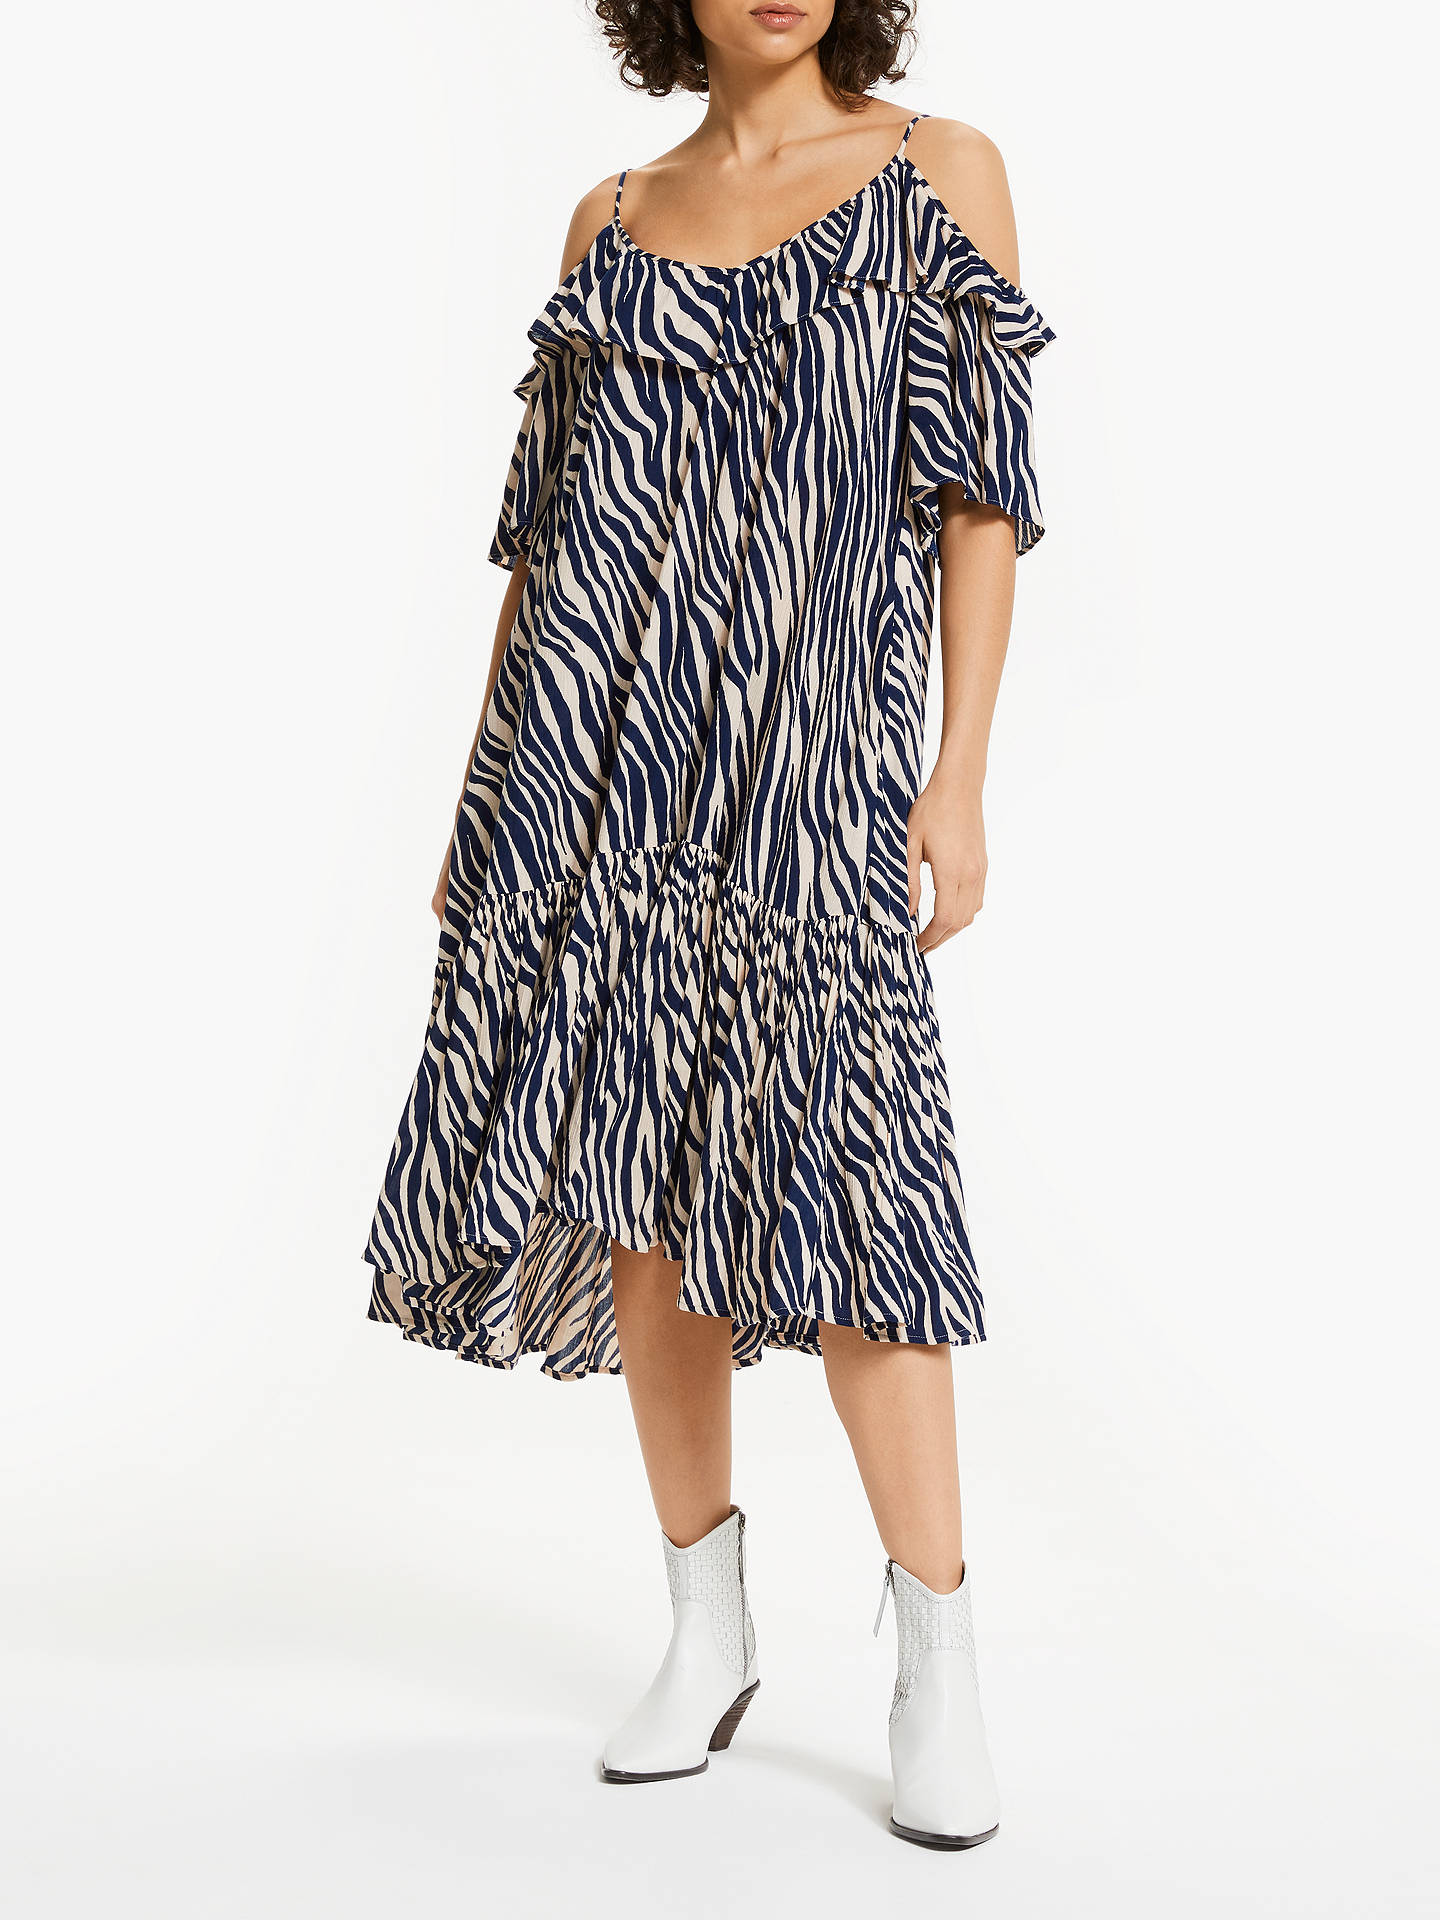 762317b5d3da Buy AND/OR Erica Zebra Print Ruffle Dress, Navy, 10 Online at johnlewis ...